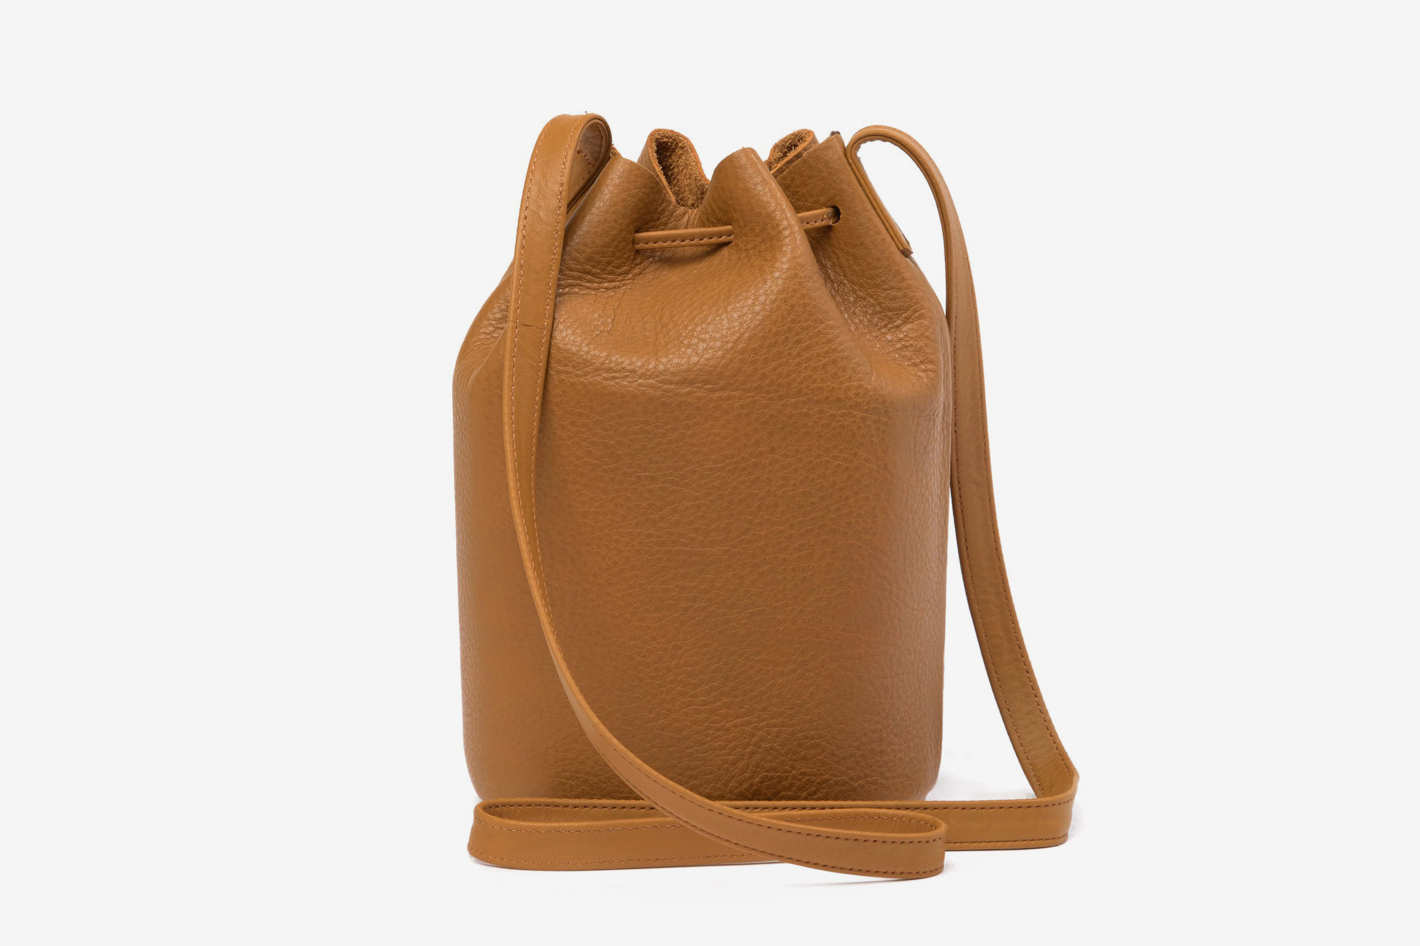 Baggu Leather Bucket Bag